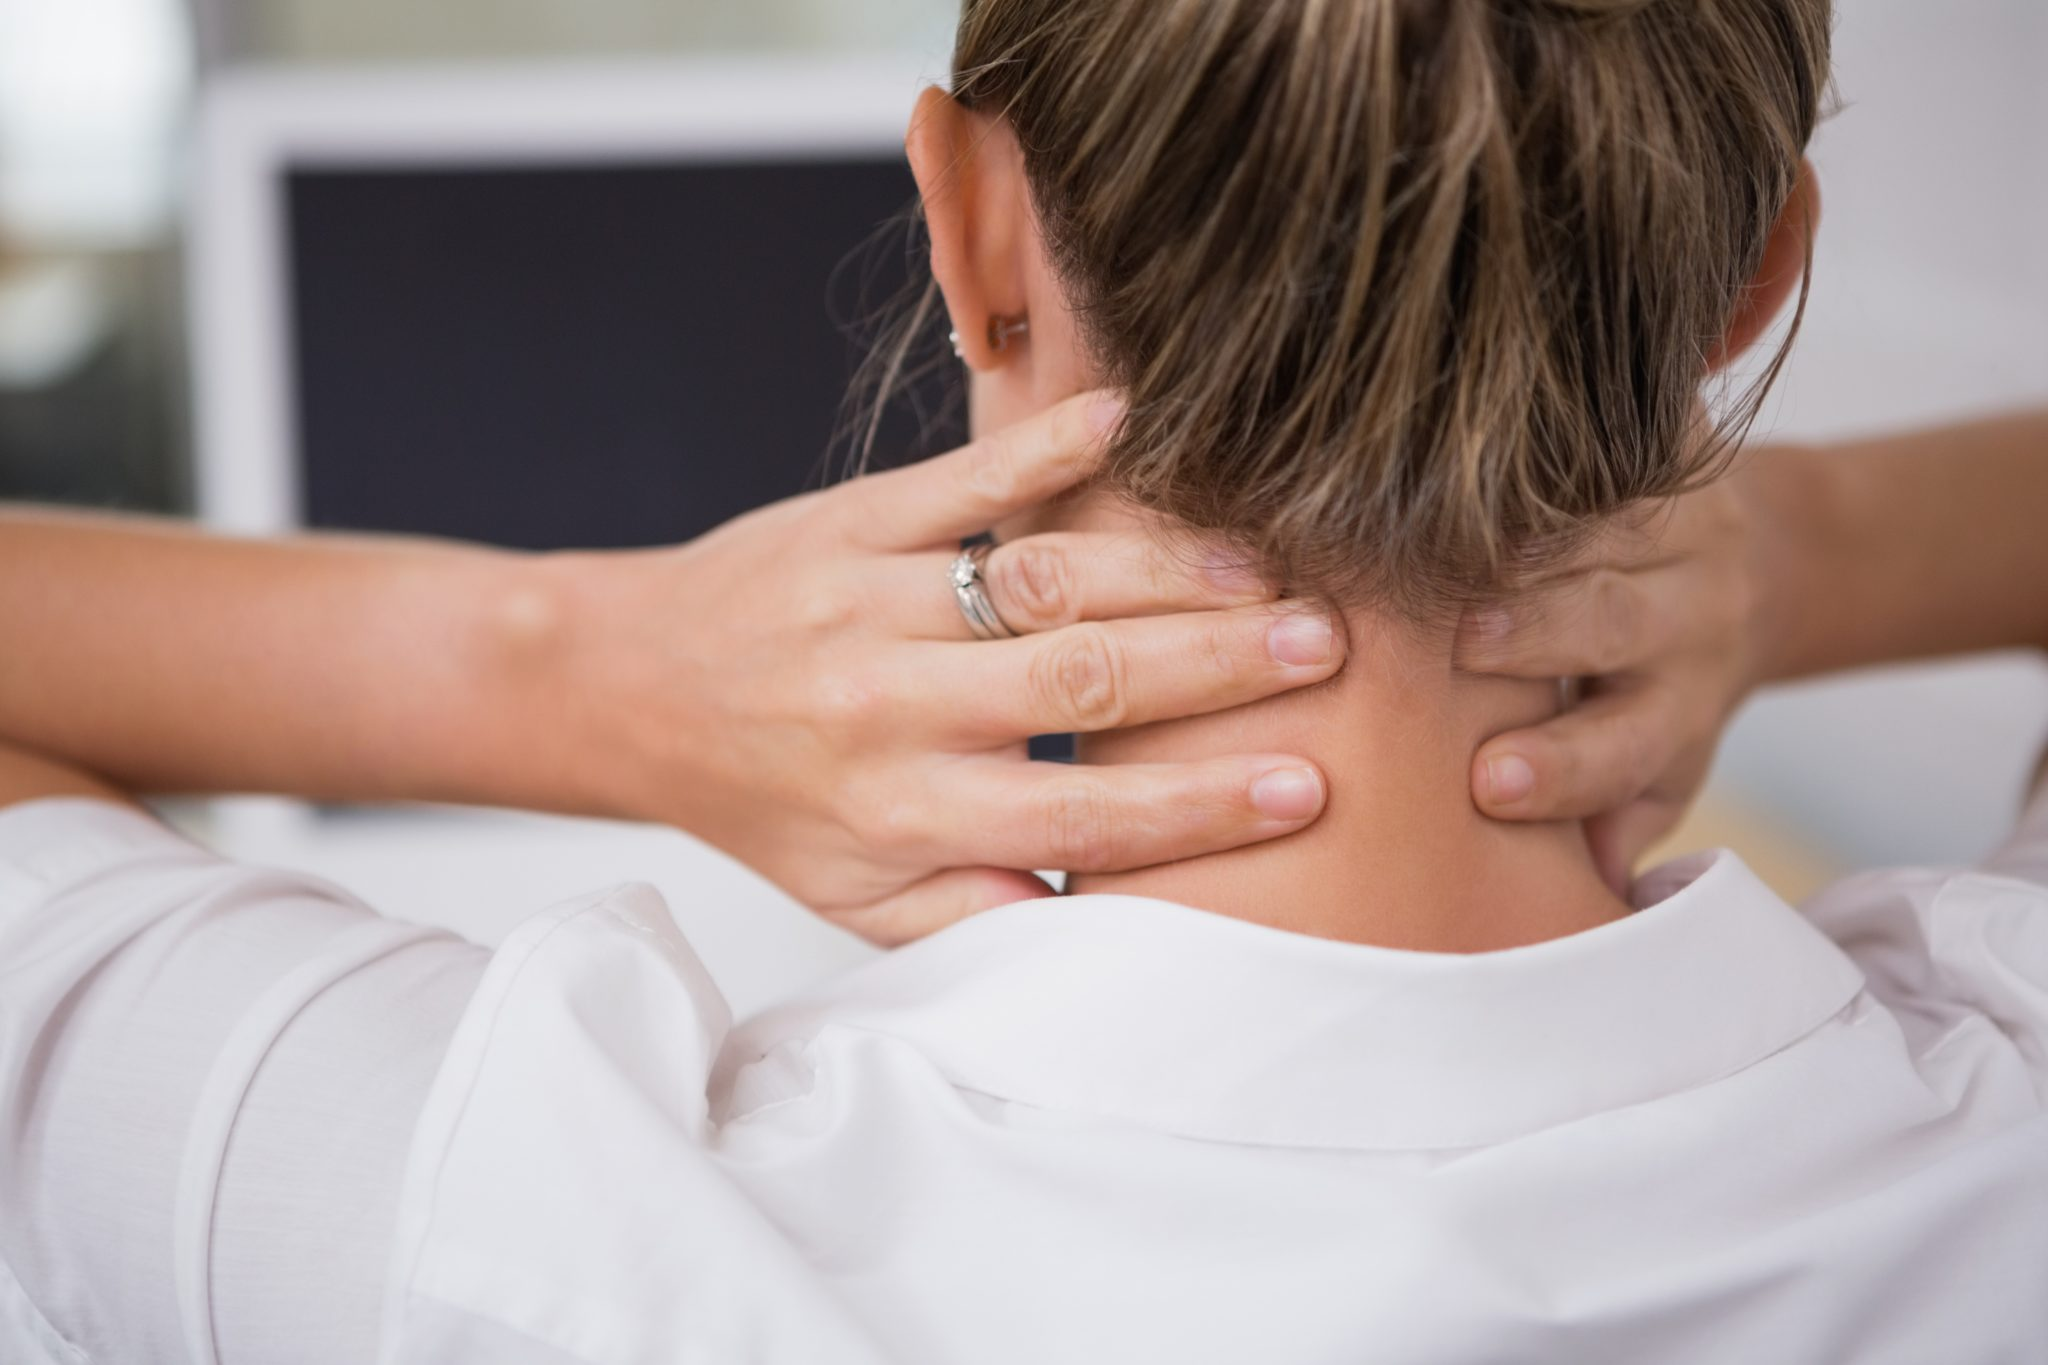 Here's How Your Poor Posture Can Contribute To Muscle Aches And Pains